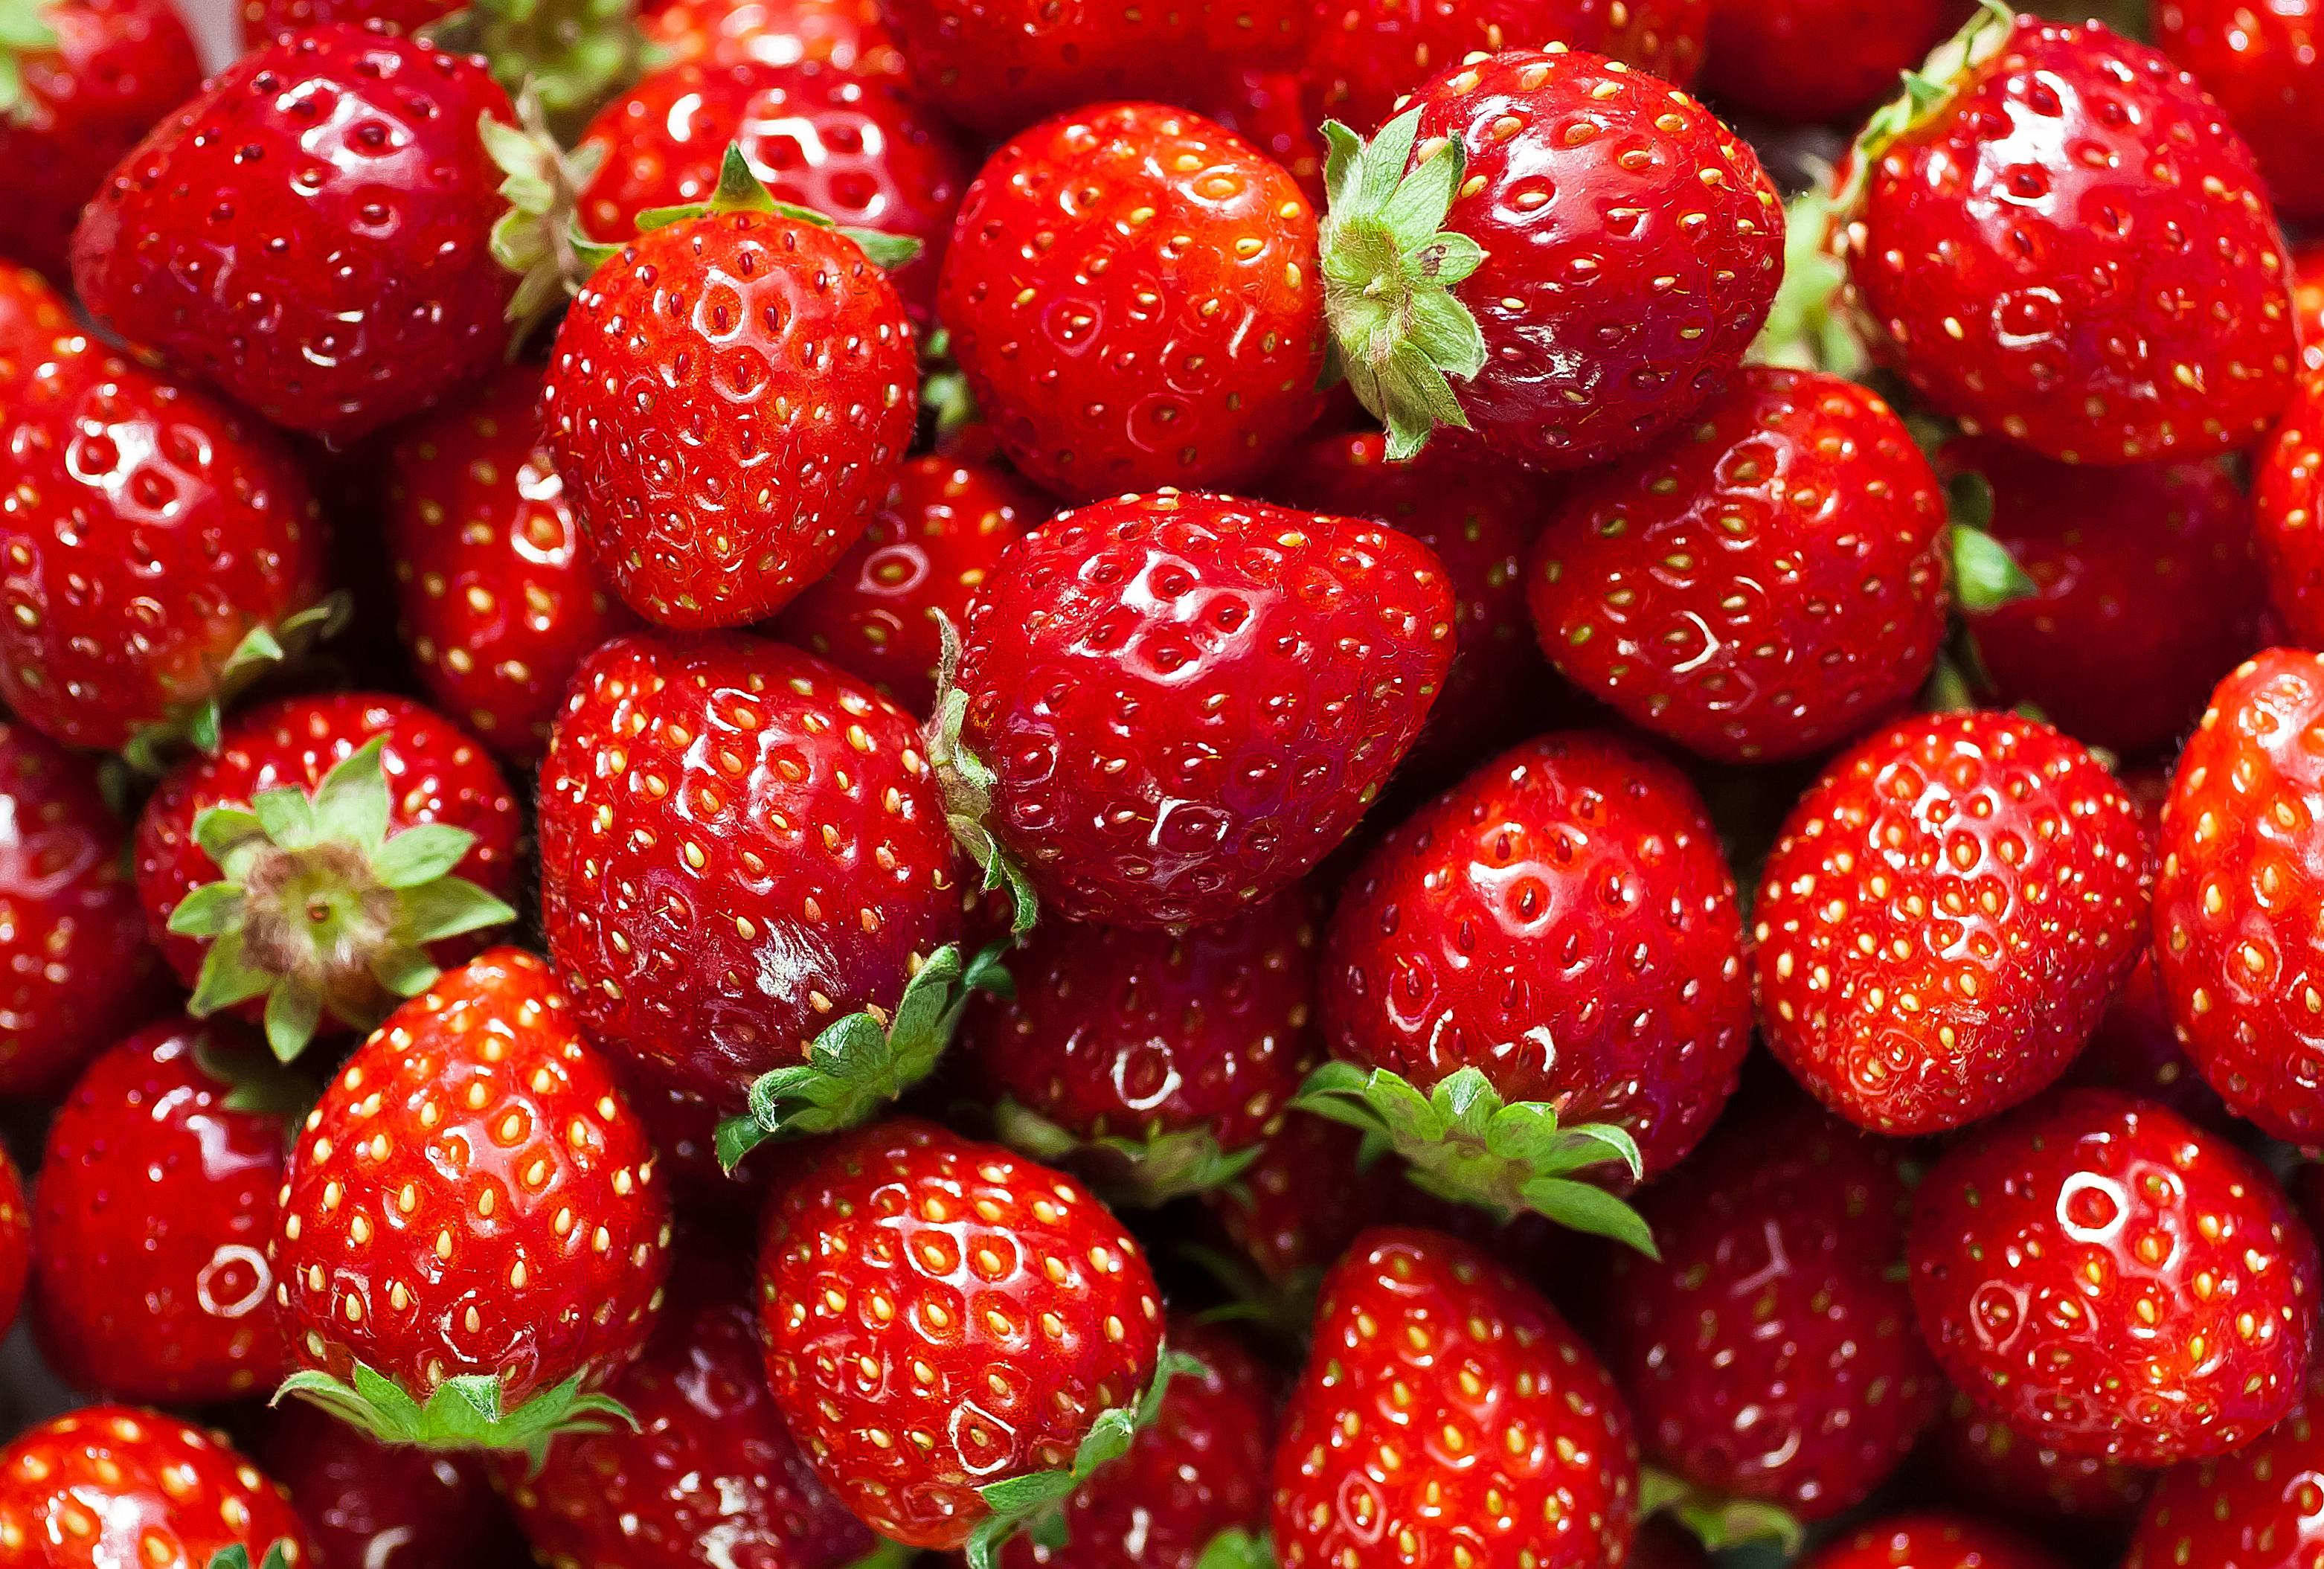 Nail found in strawberry punnet a year after contamination scandal